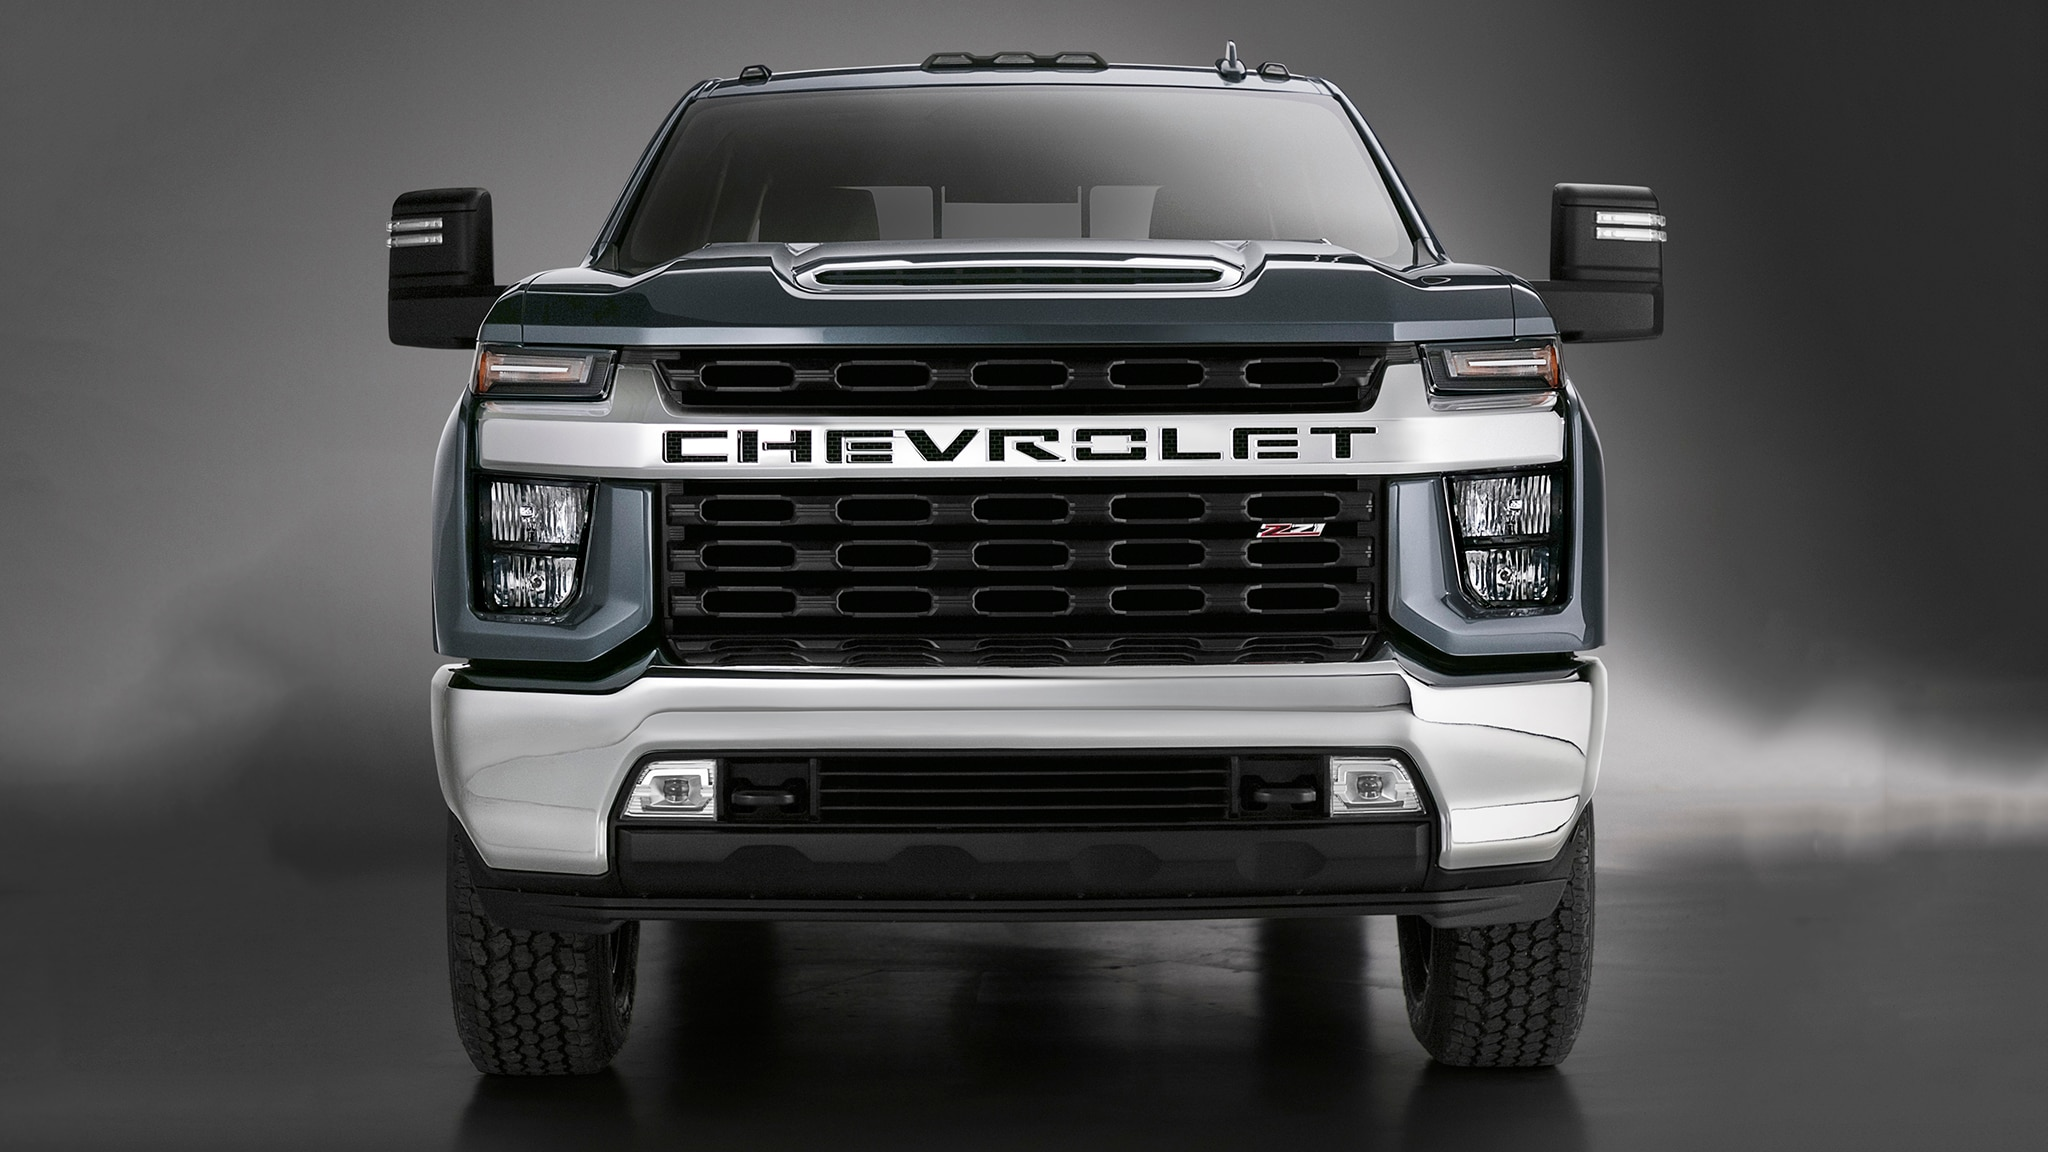 Chevrolet Silverado HD delivers 910 lb-ft of furious torque